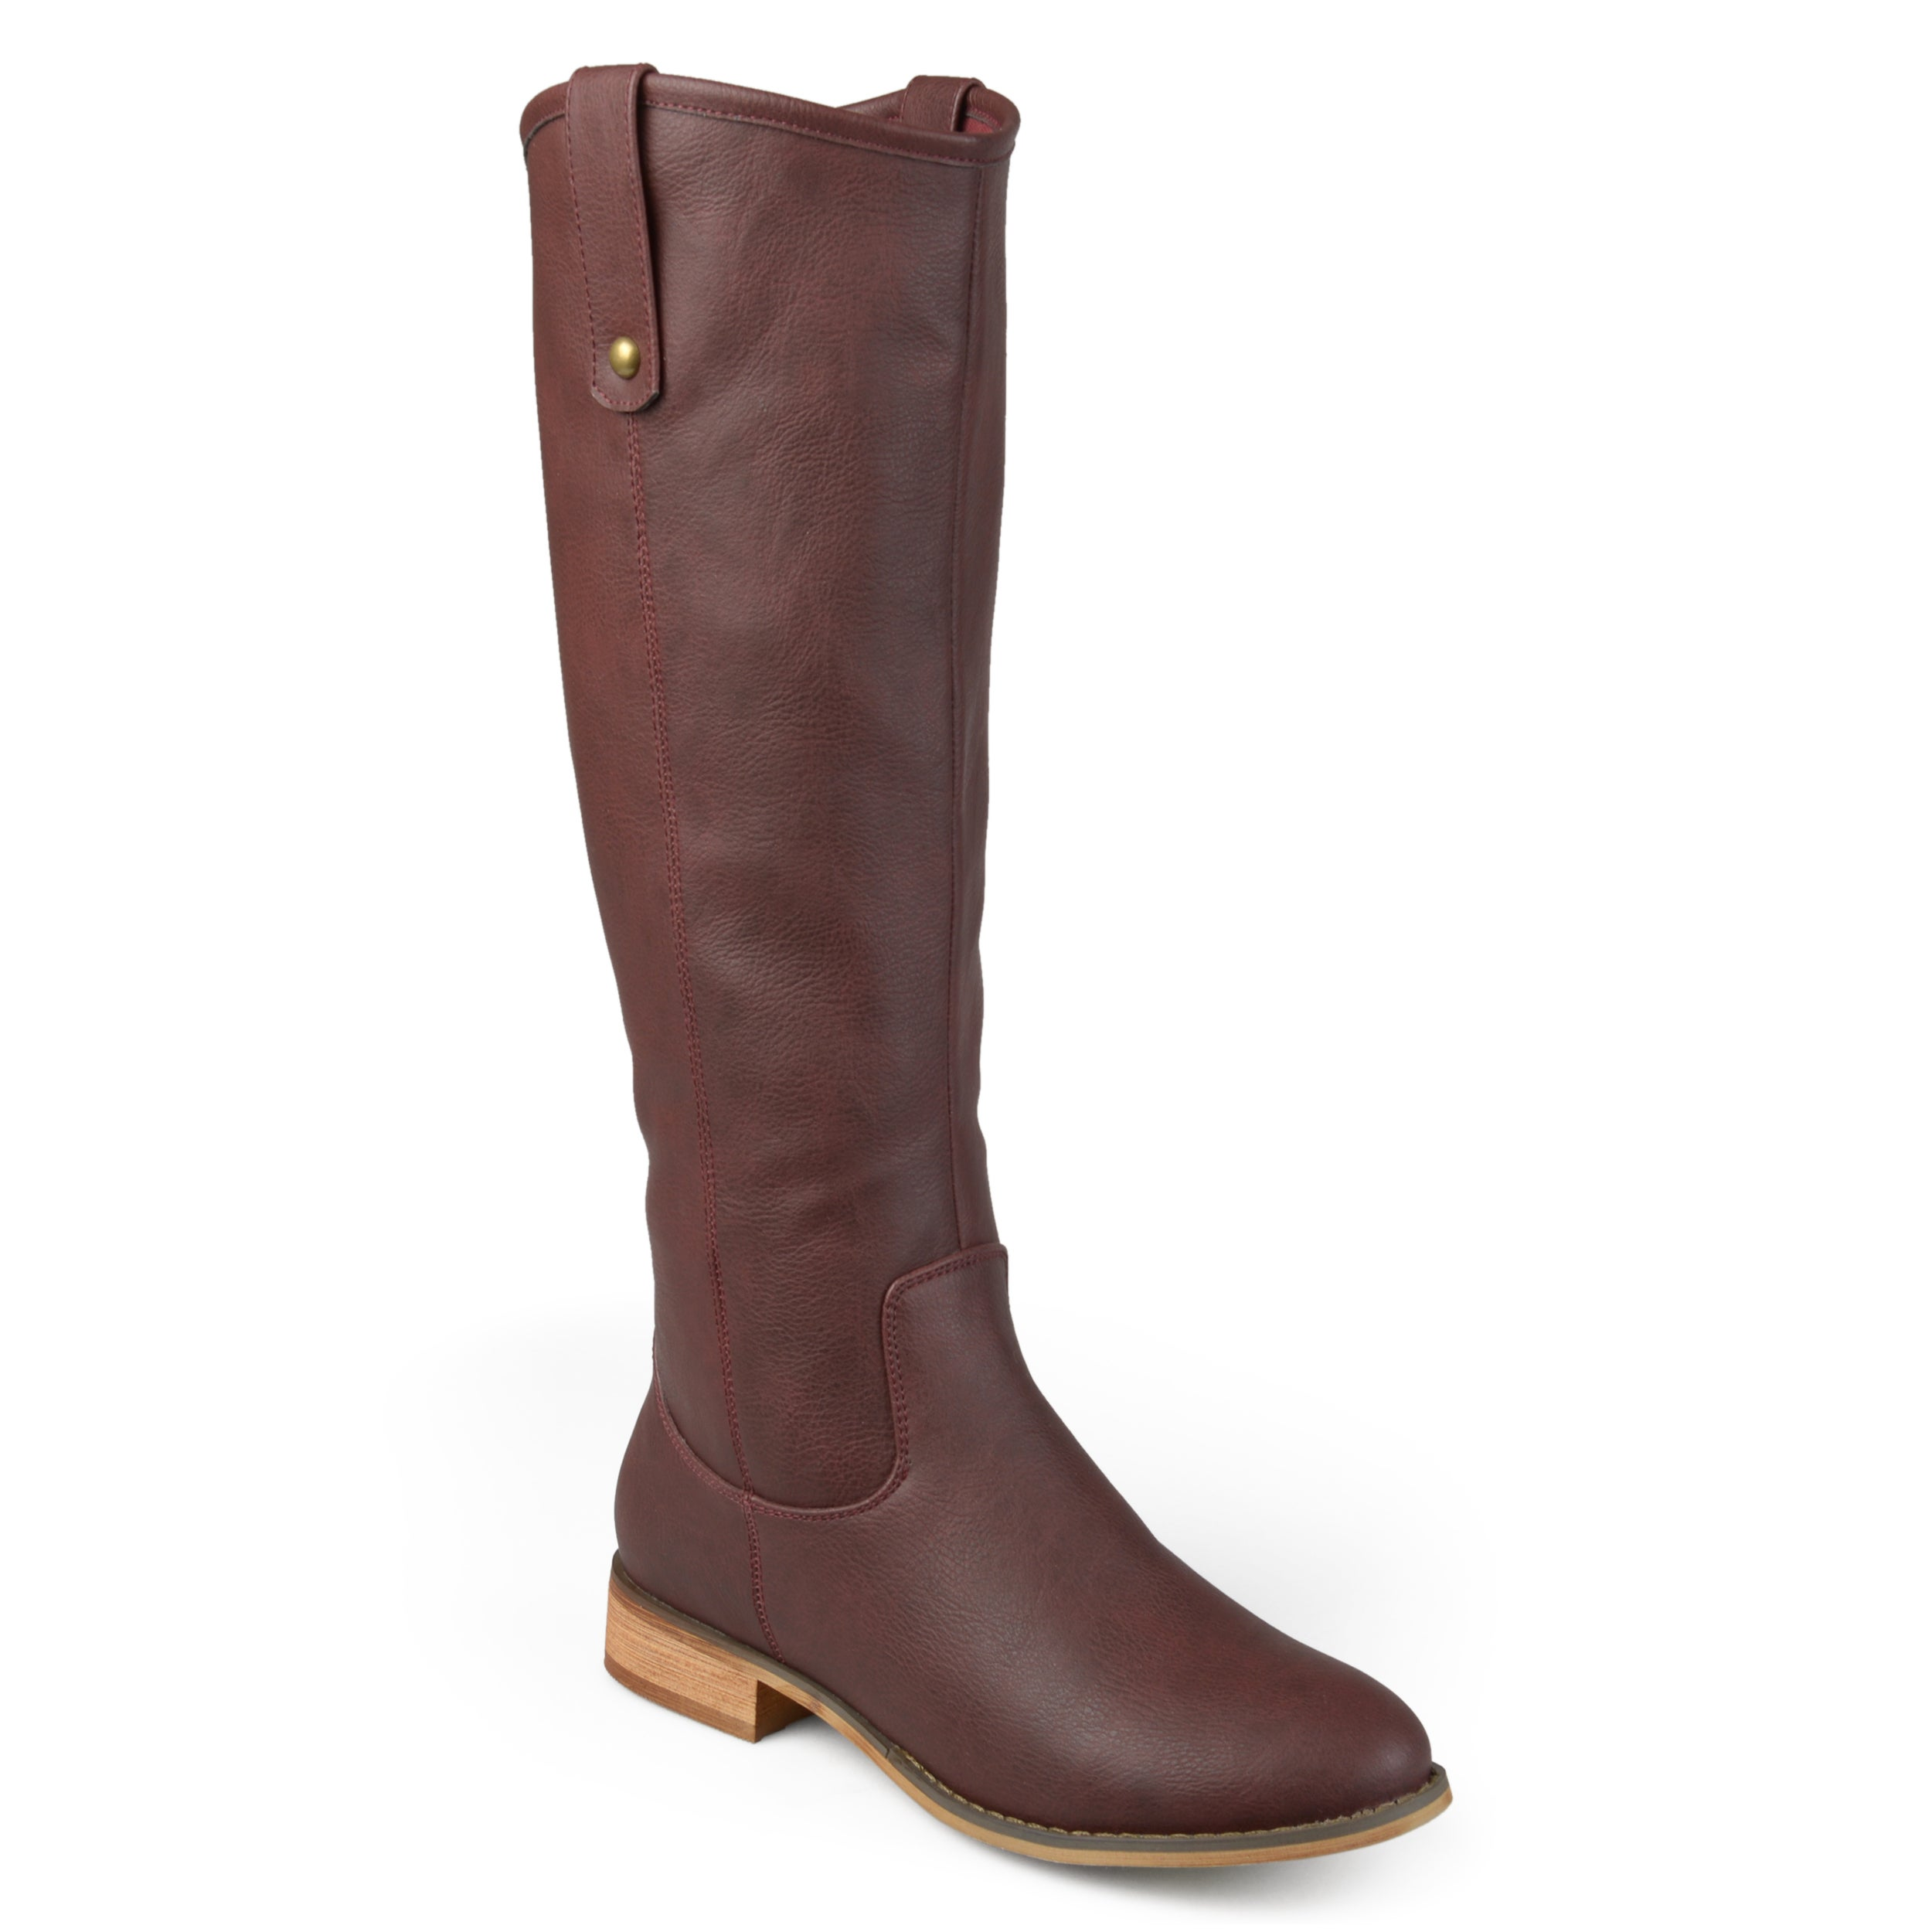 466fe4813cb70 Shop Journee Collection Womens 'Taven' Regular, Wide, Extra Wide Calf Boots  - Free Shipping Today - Overstock - 16518854